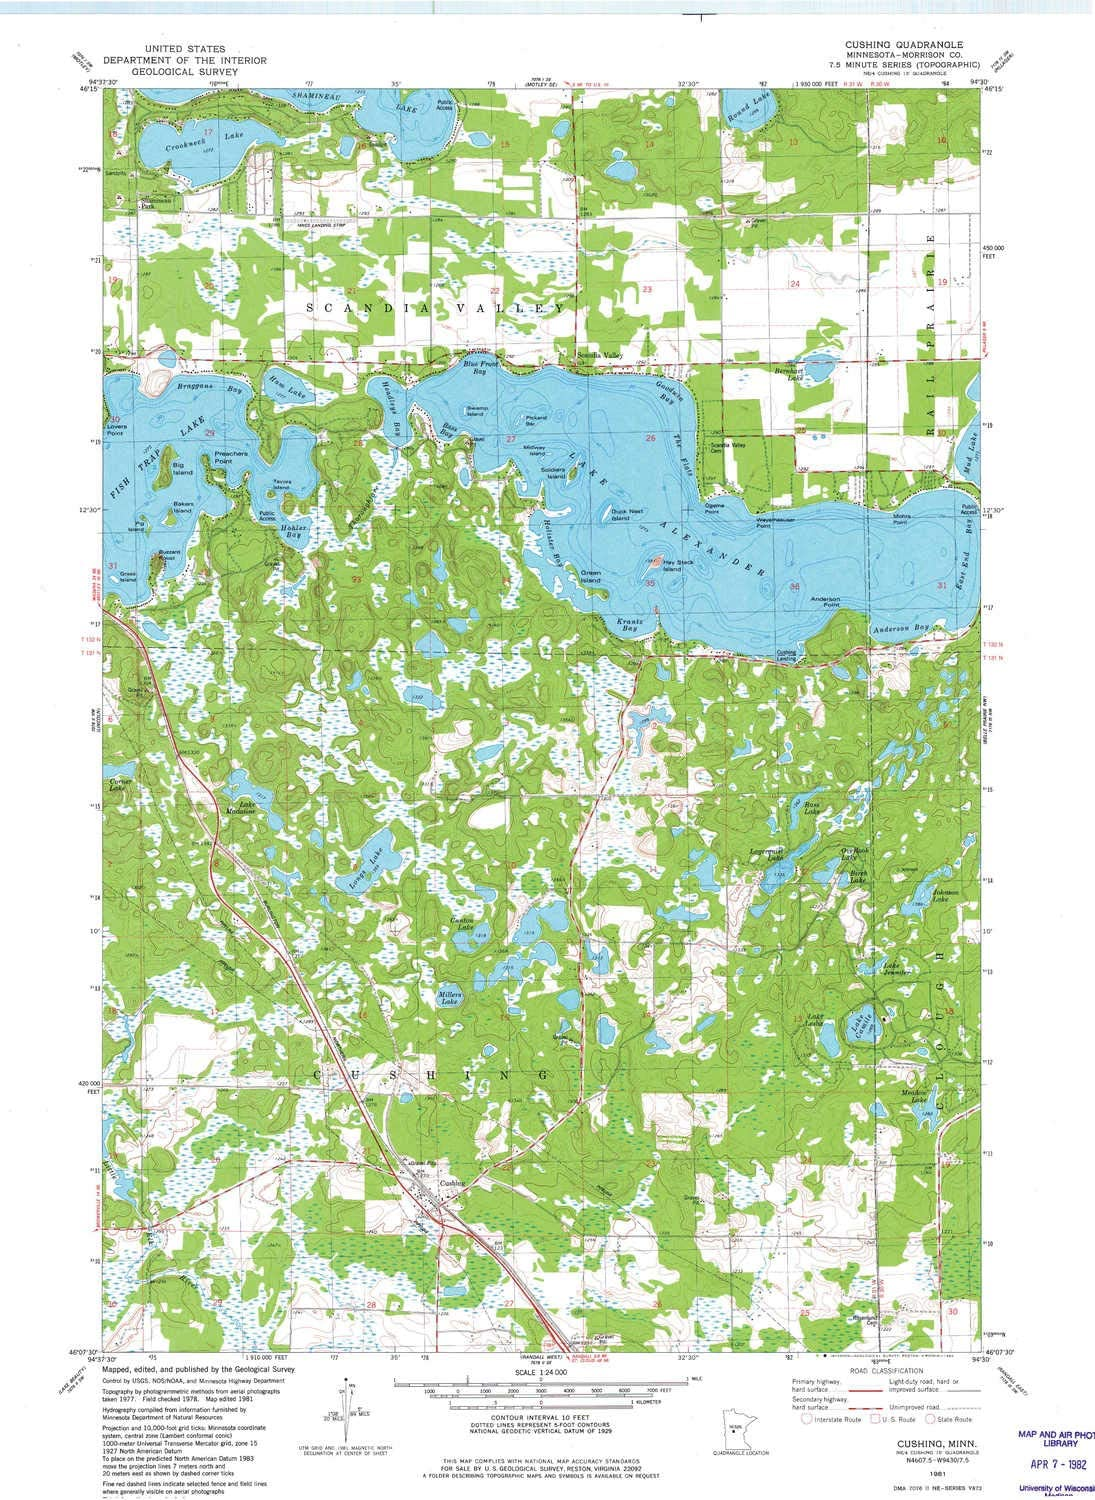 27.23 x 21.53 in 1:24000 Scale Updated 1982 1981 7.5 X 7.5 Minute YellowMaps Cushing MN topo map Historical